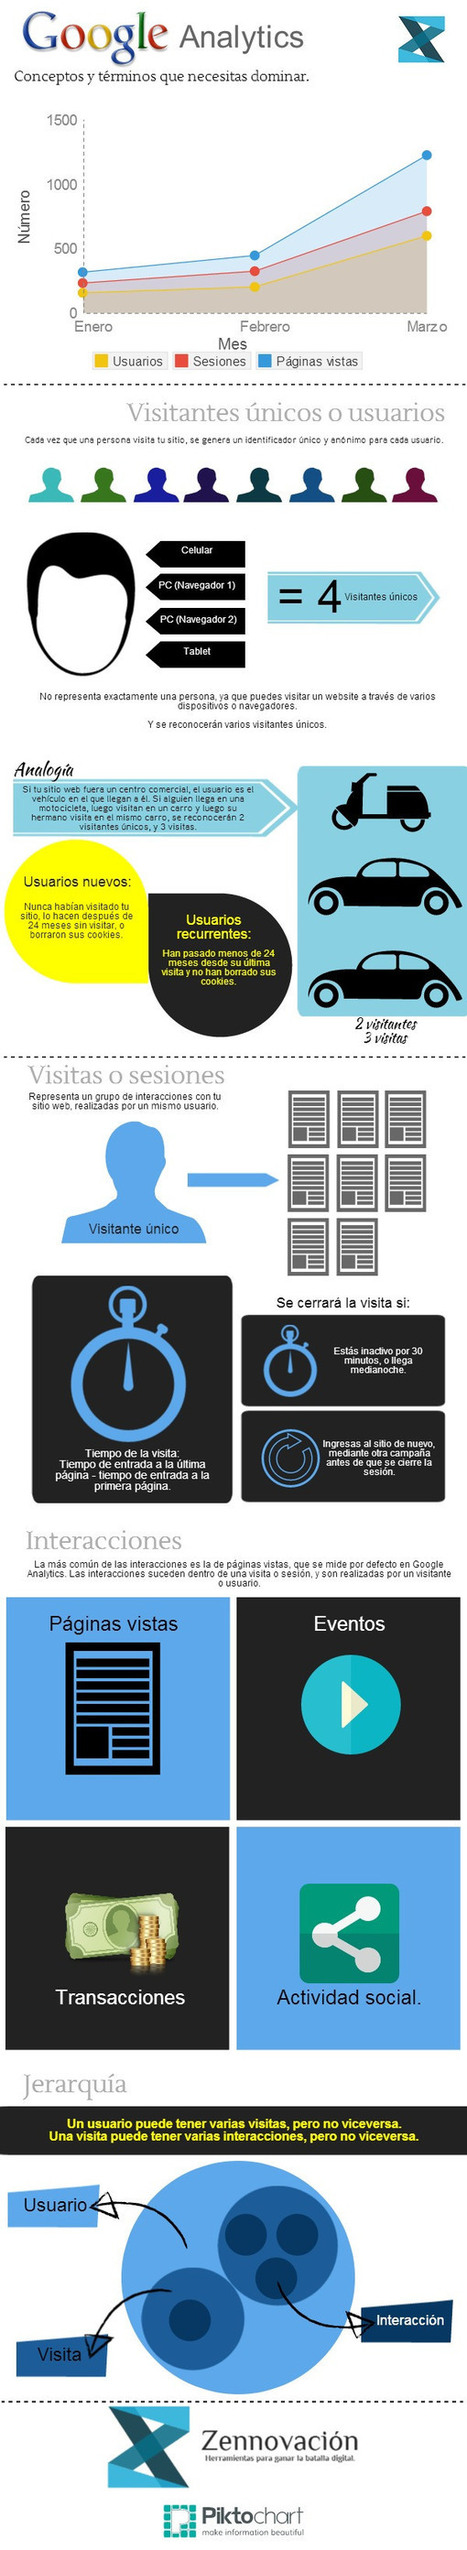 La terminología de Google Analytics #infografia #infographic #marketing #seo | Seo, Social Media Marketing | Scoop.it